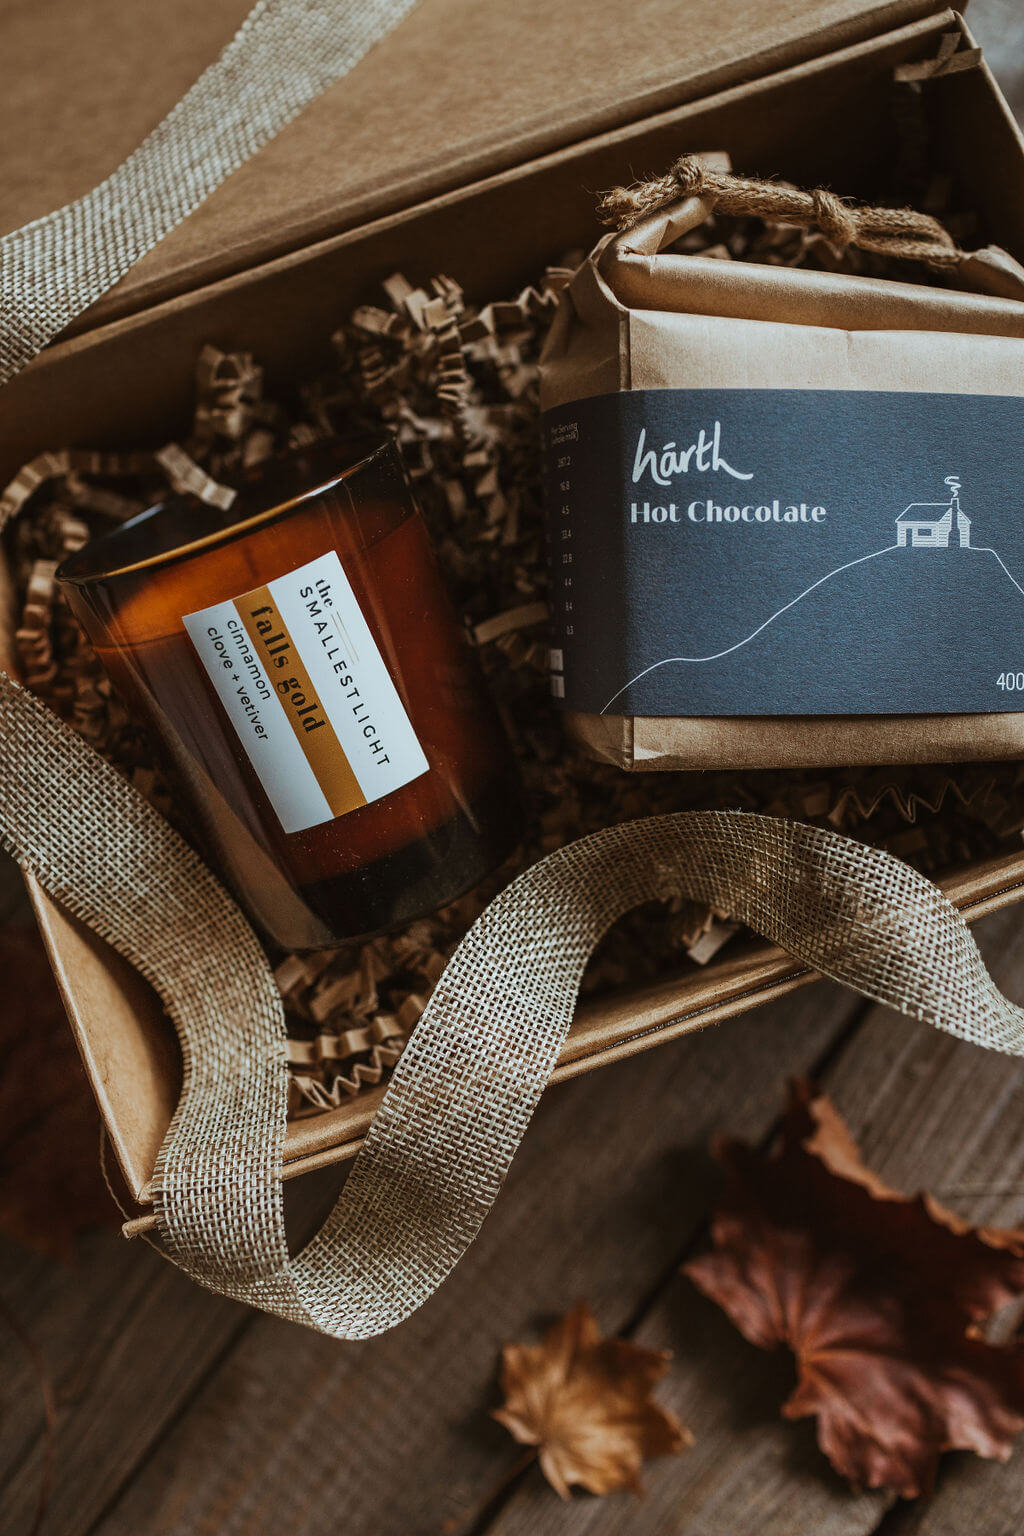 spring wellbeing gift box - The Smallest Light